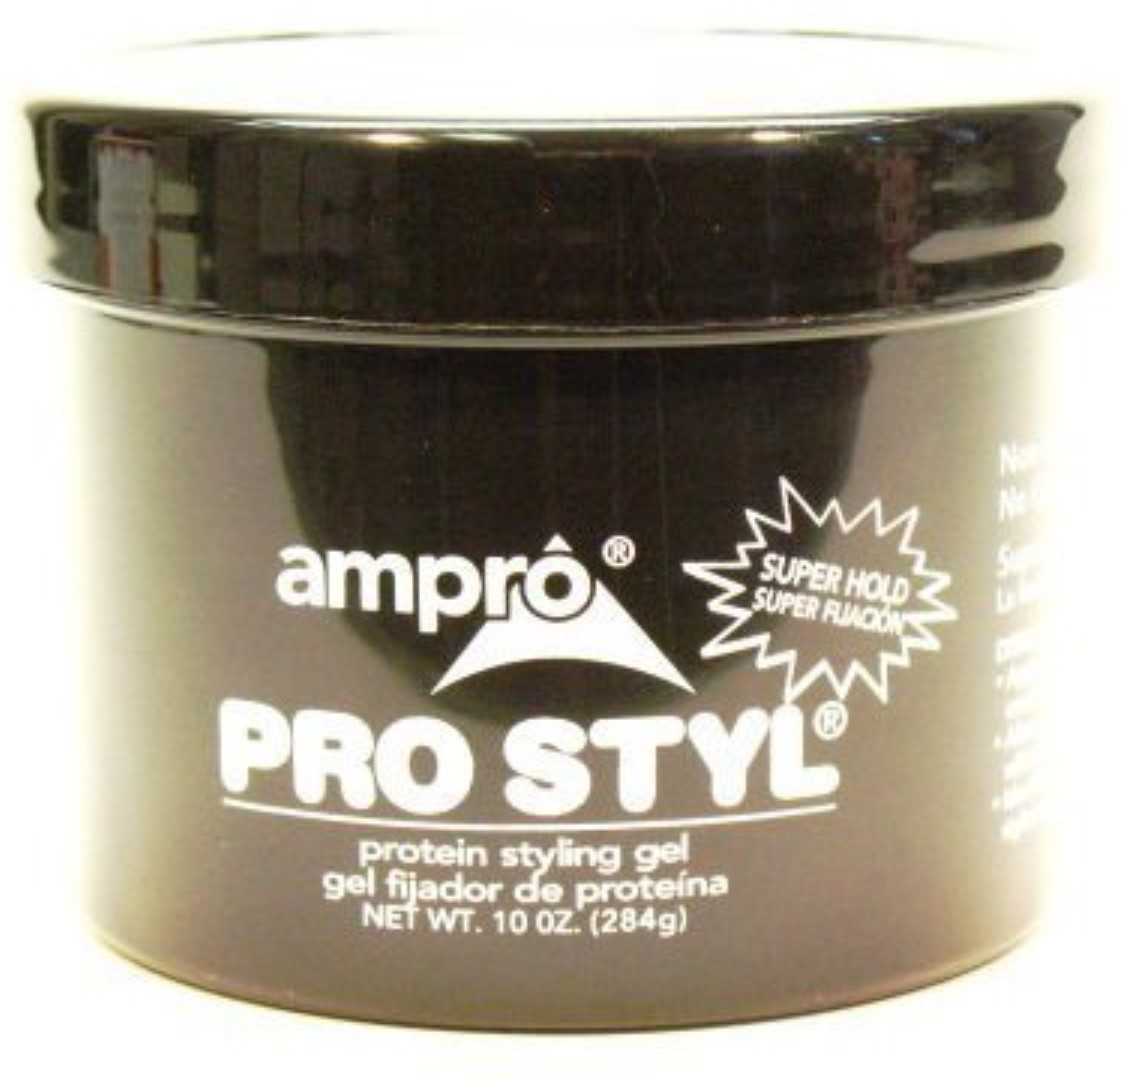 Ampro Protein Styling Gel, Super Hold 10 oz (Pack of 2)